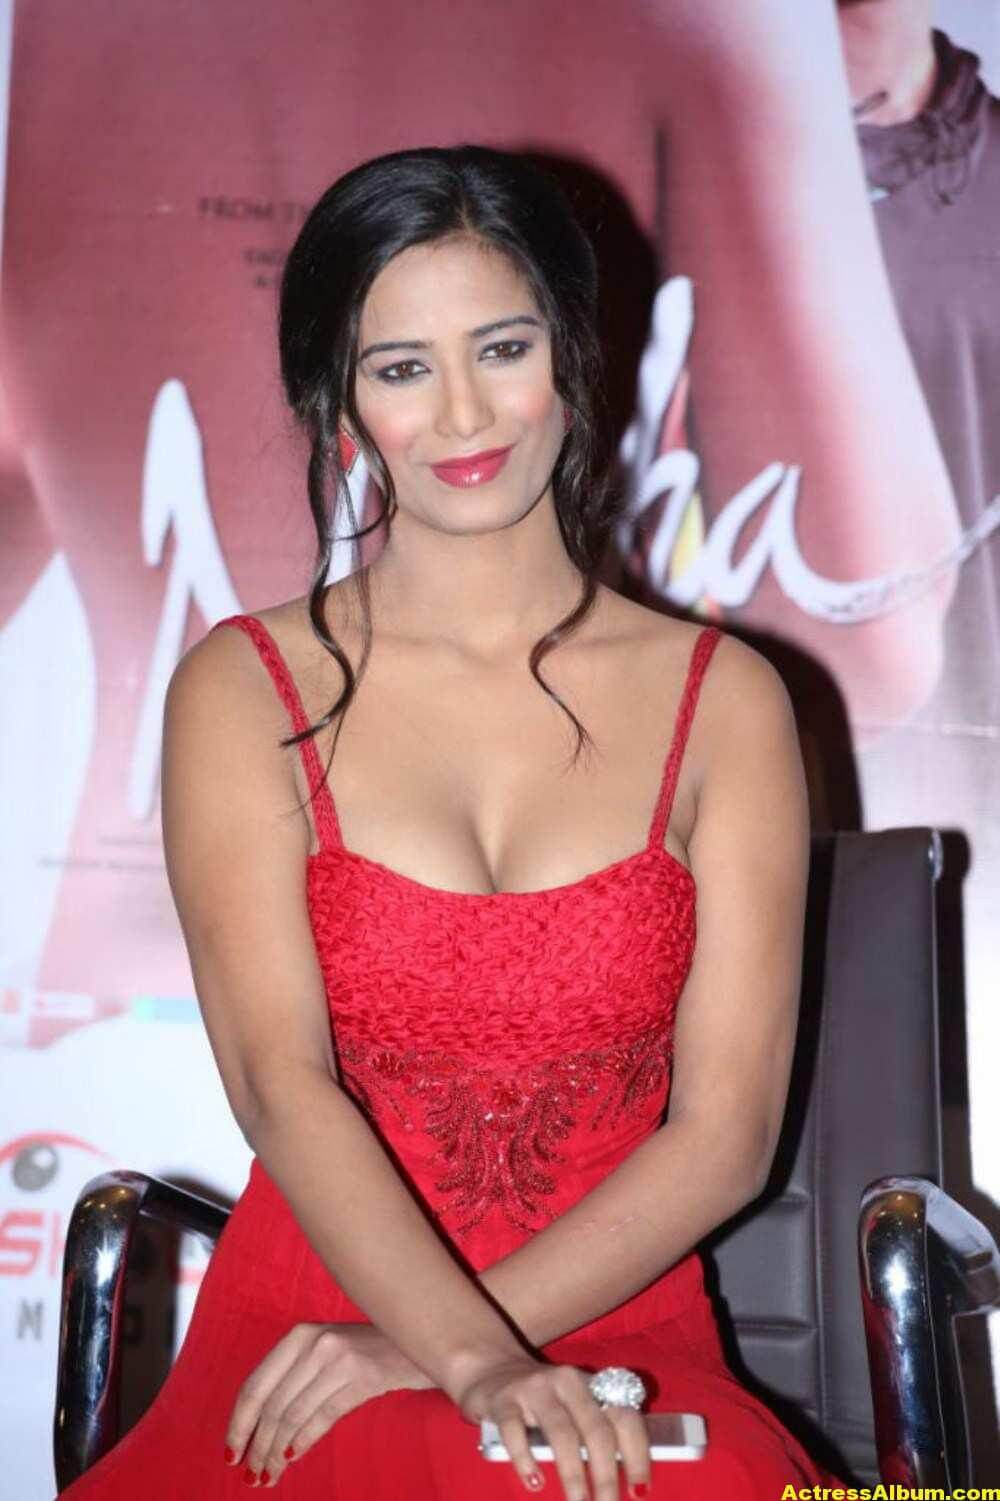 poonam pandey hot and sexy bikini photos - actress album